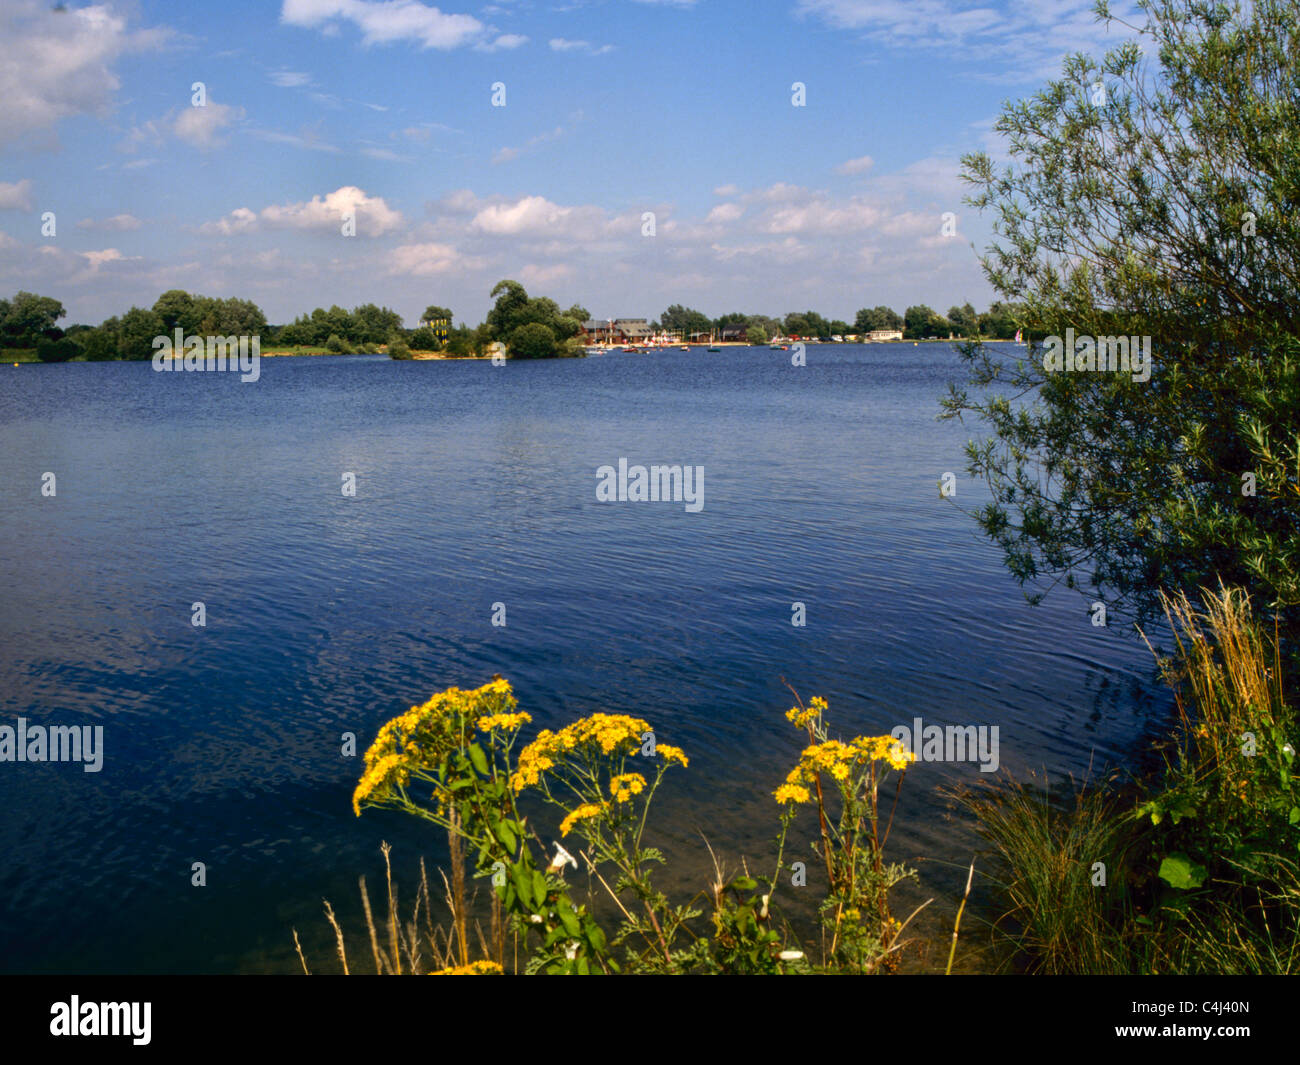 A Lake At The Cotswold Water Park Near Cirencester Gloucestershire UK